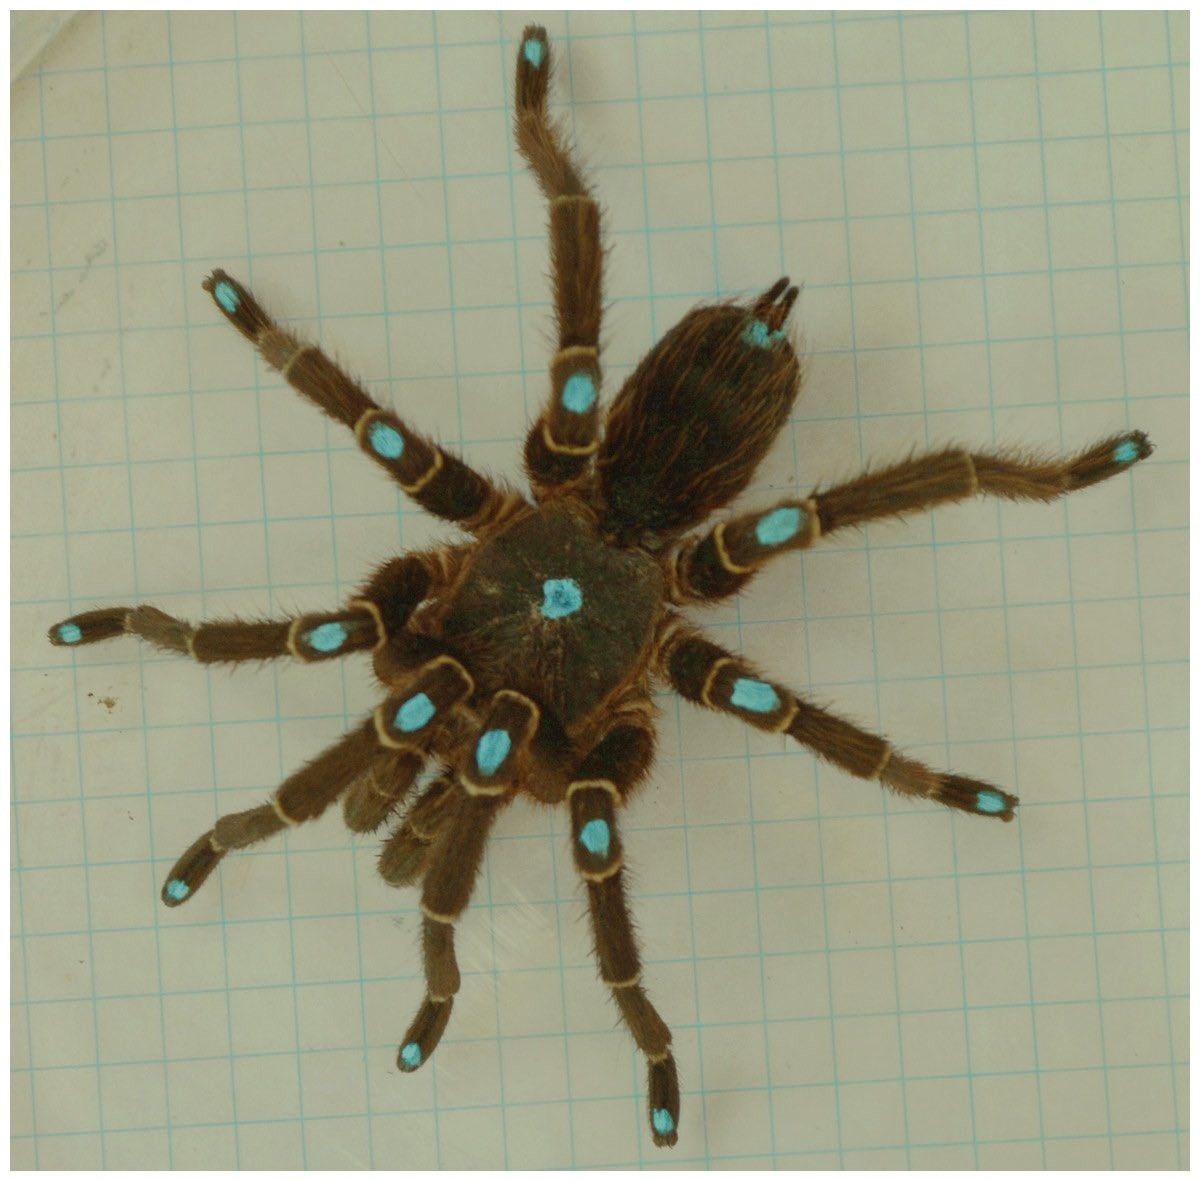 Kinematics of male tarantula locomotion